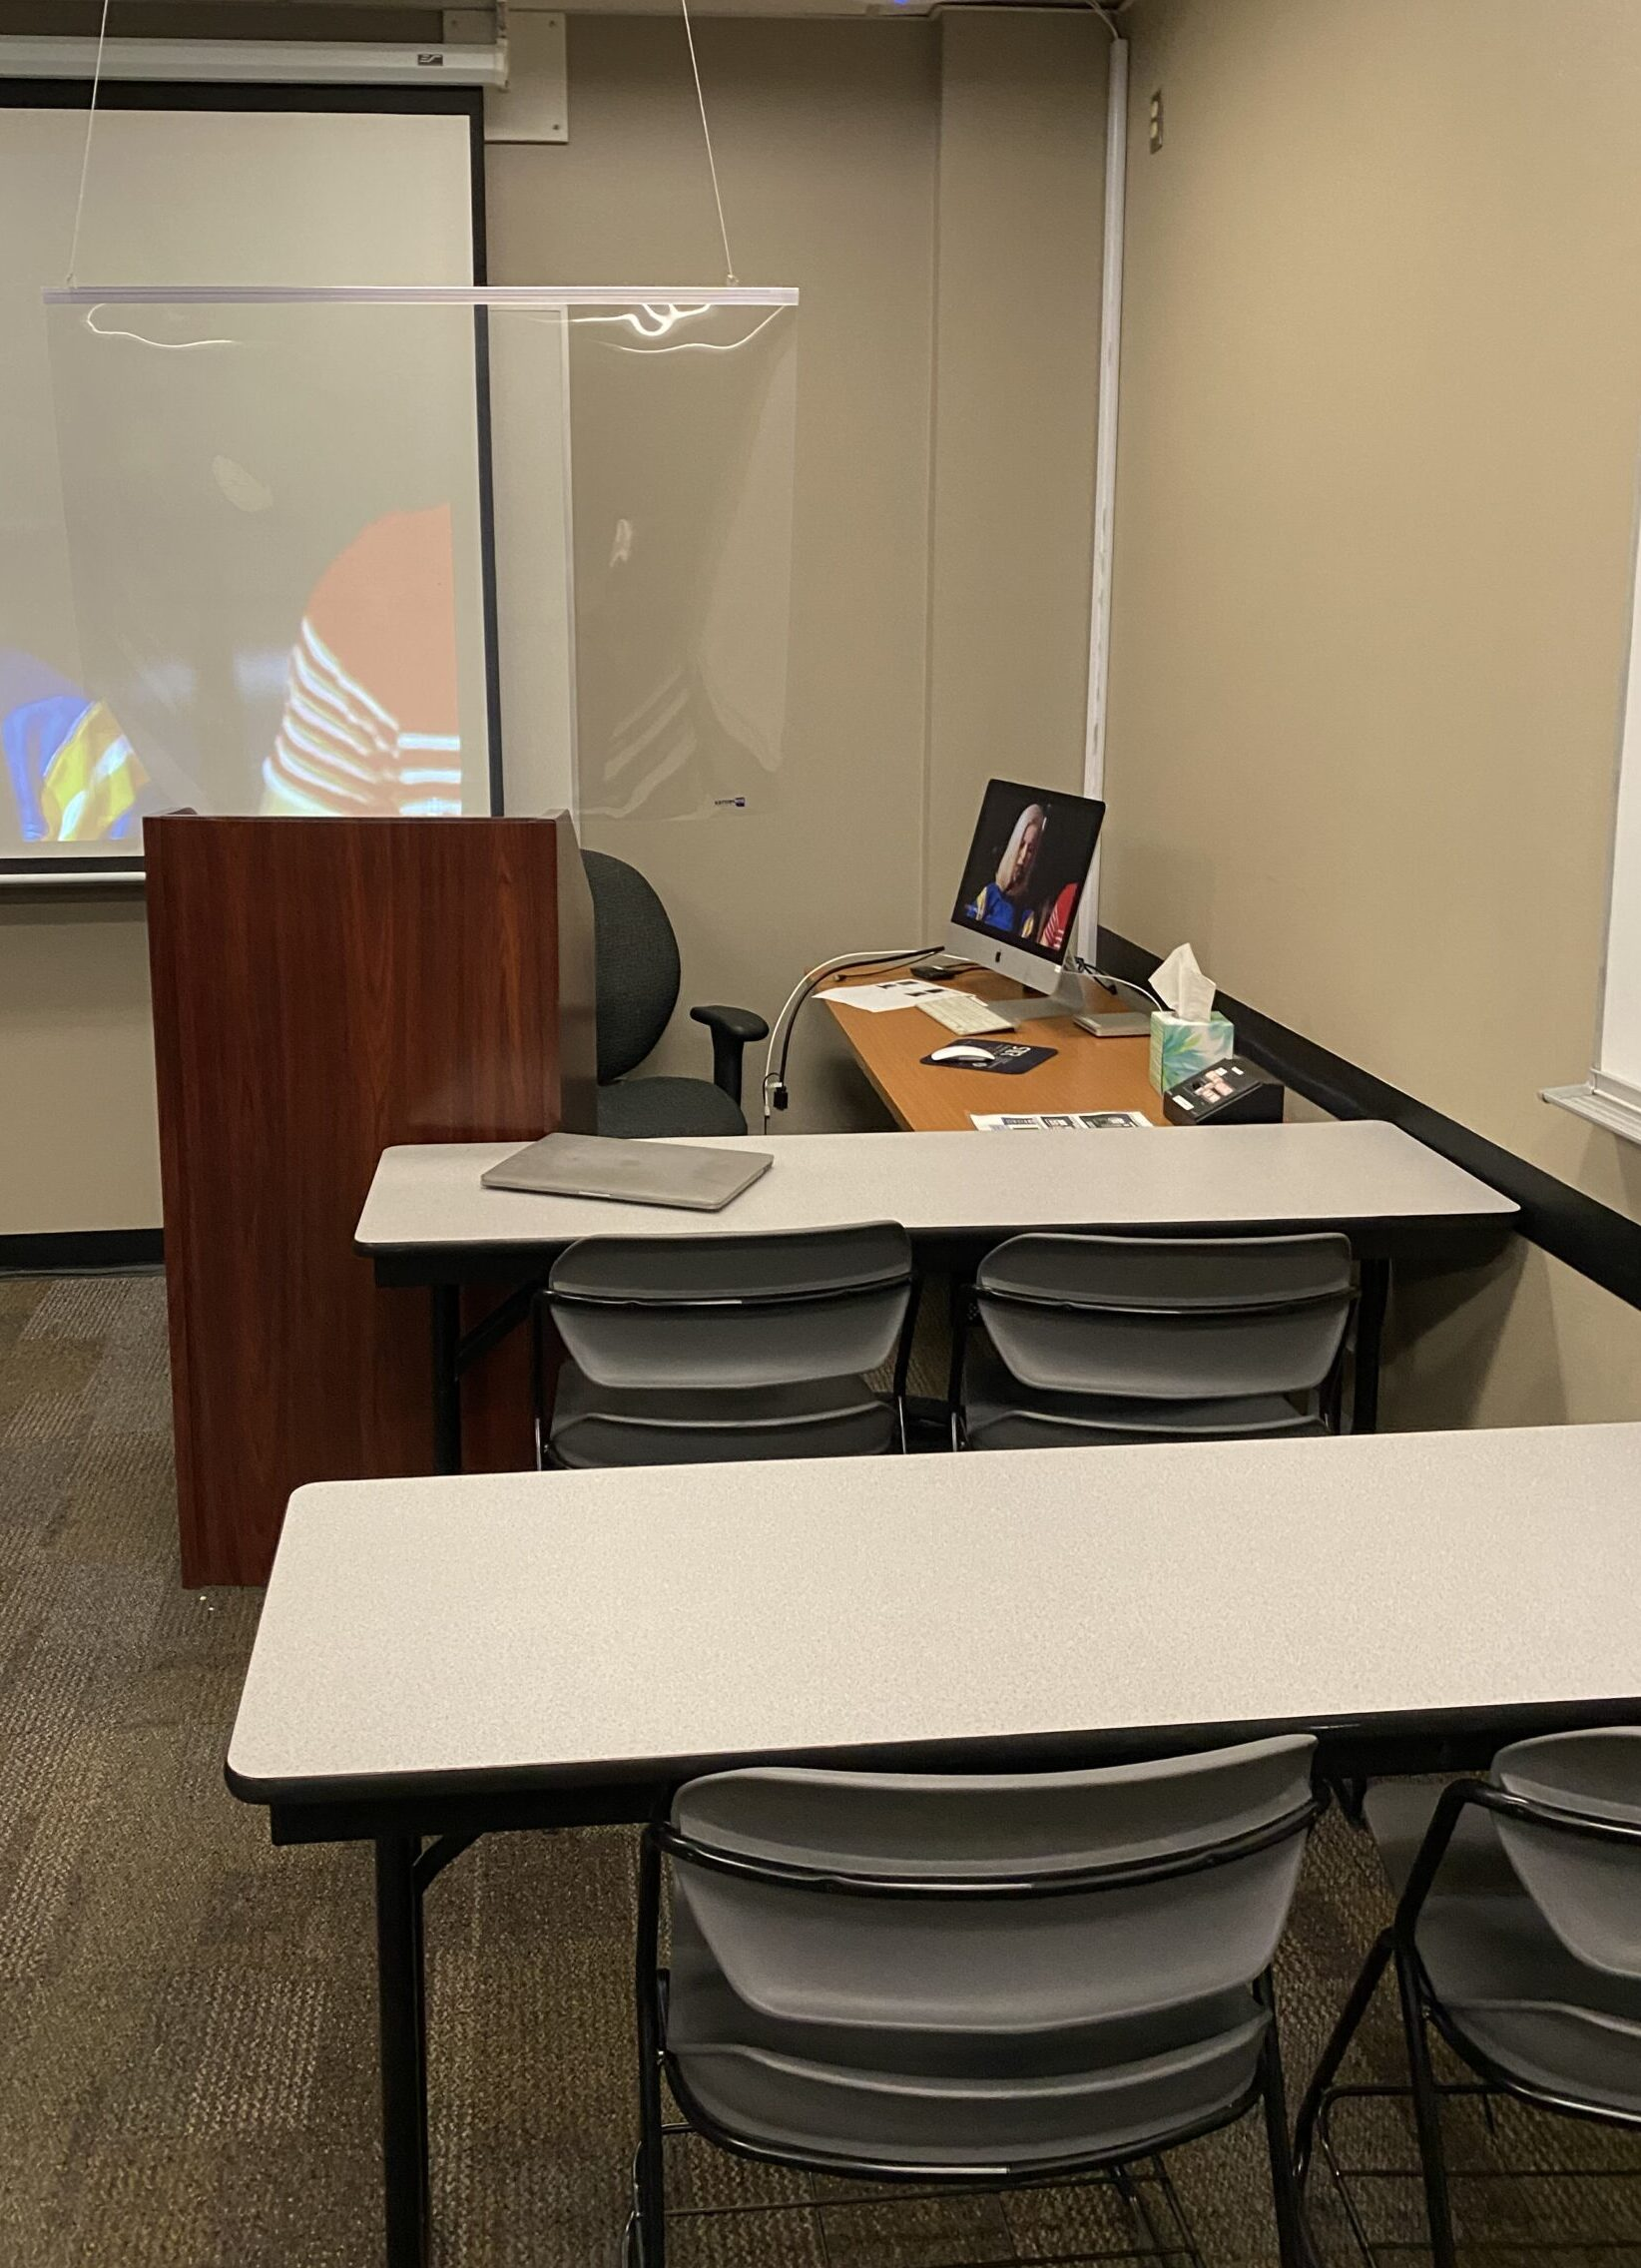 UCO seeks students as in-class monitors for remote teaching